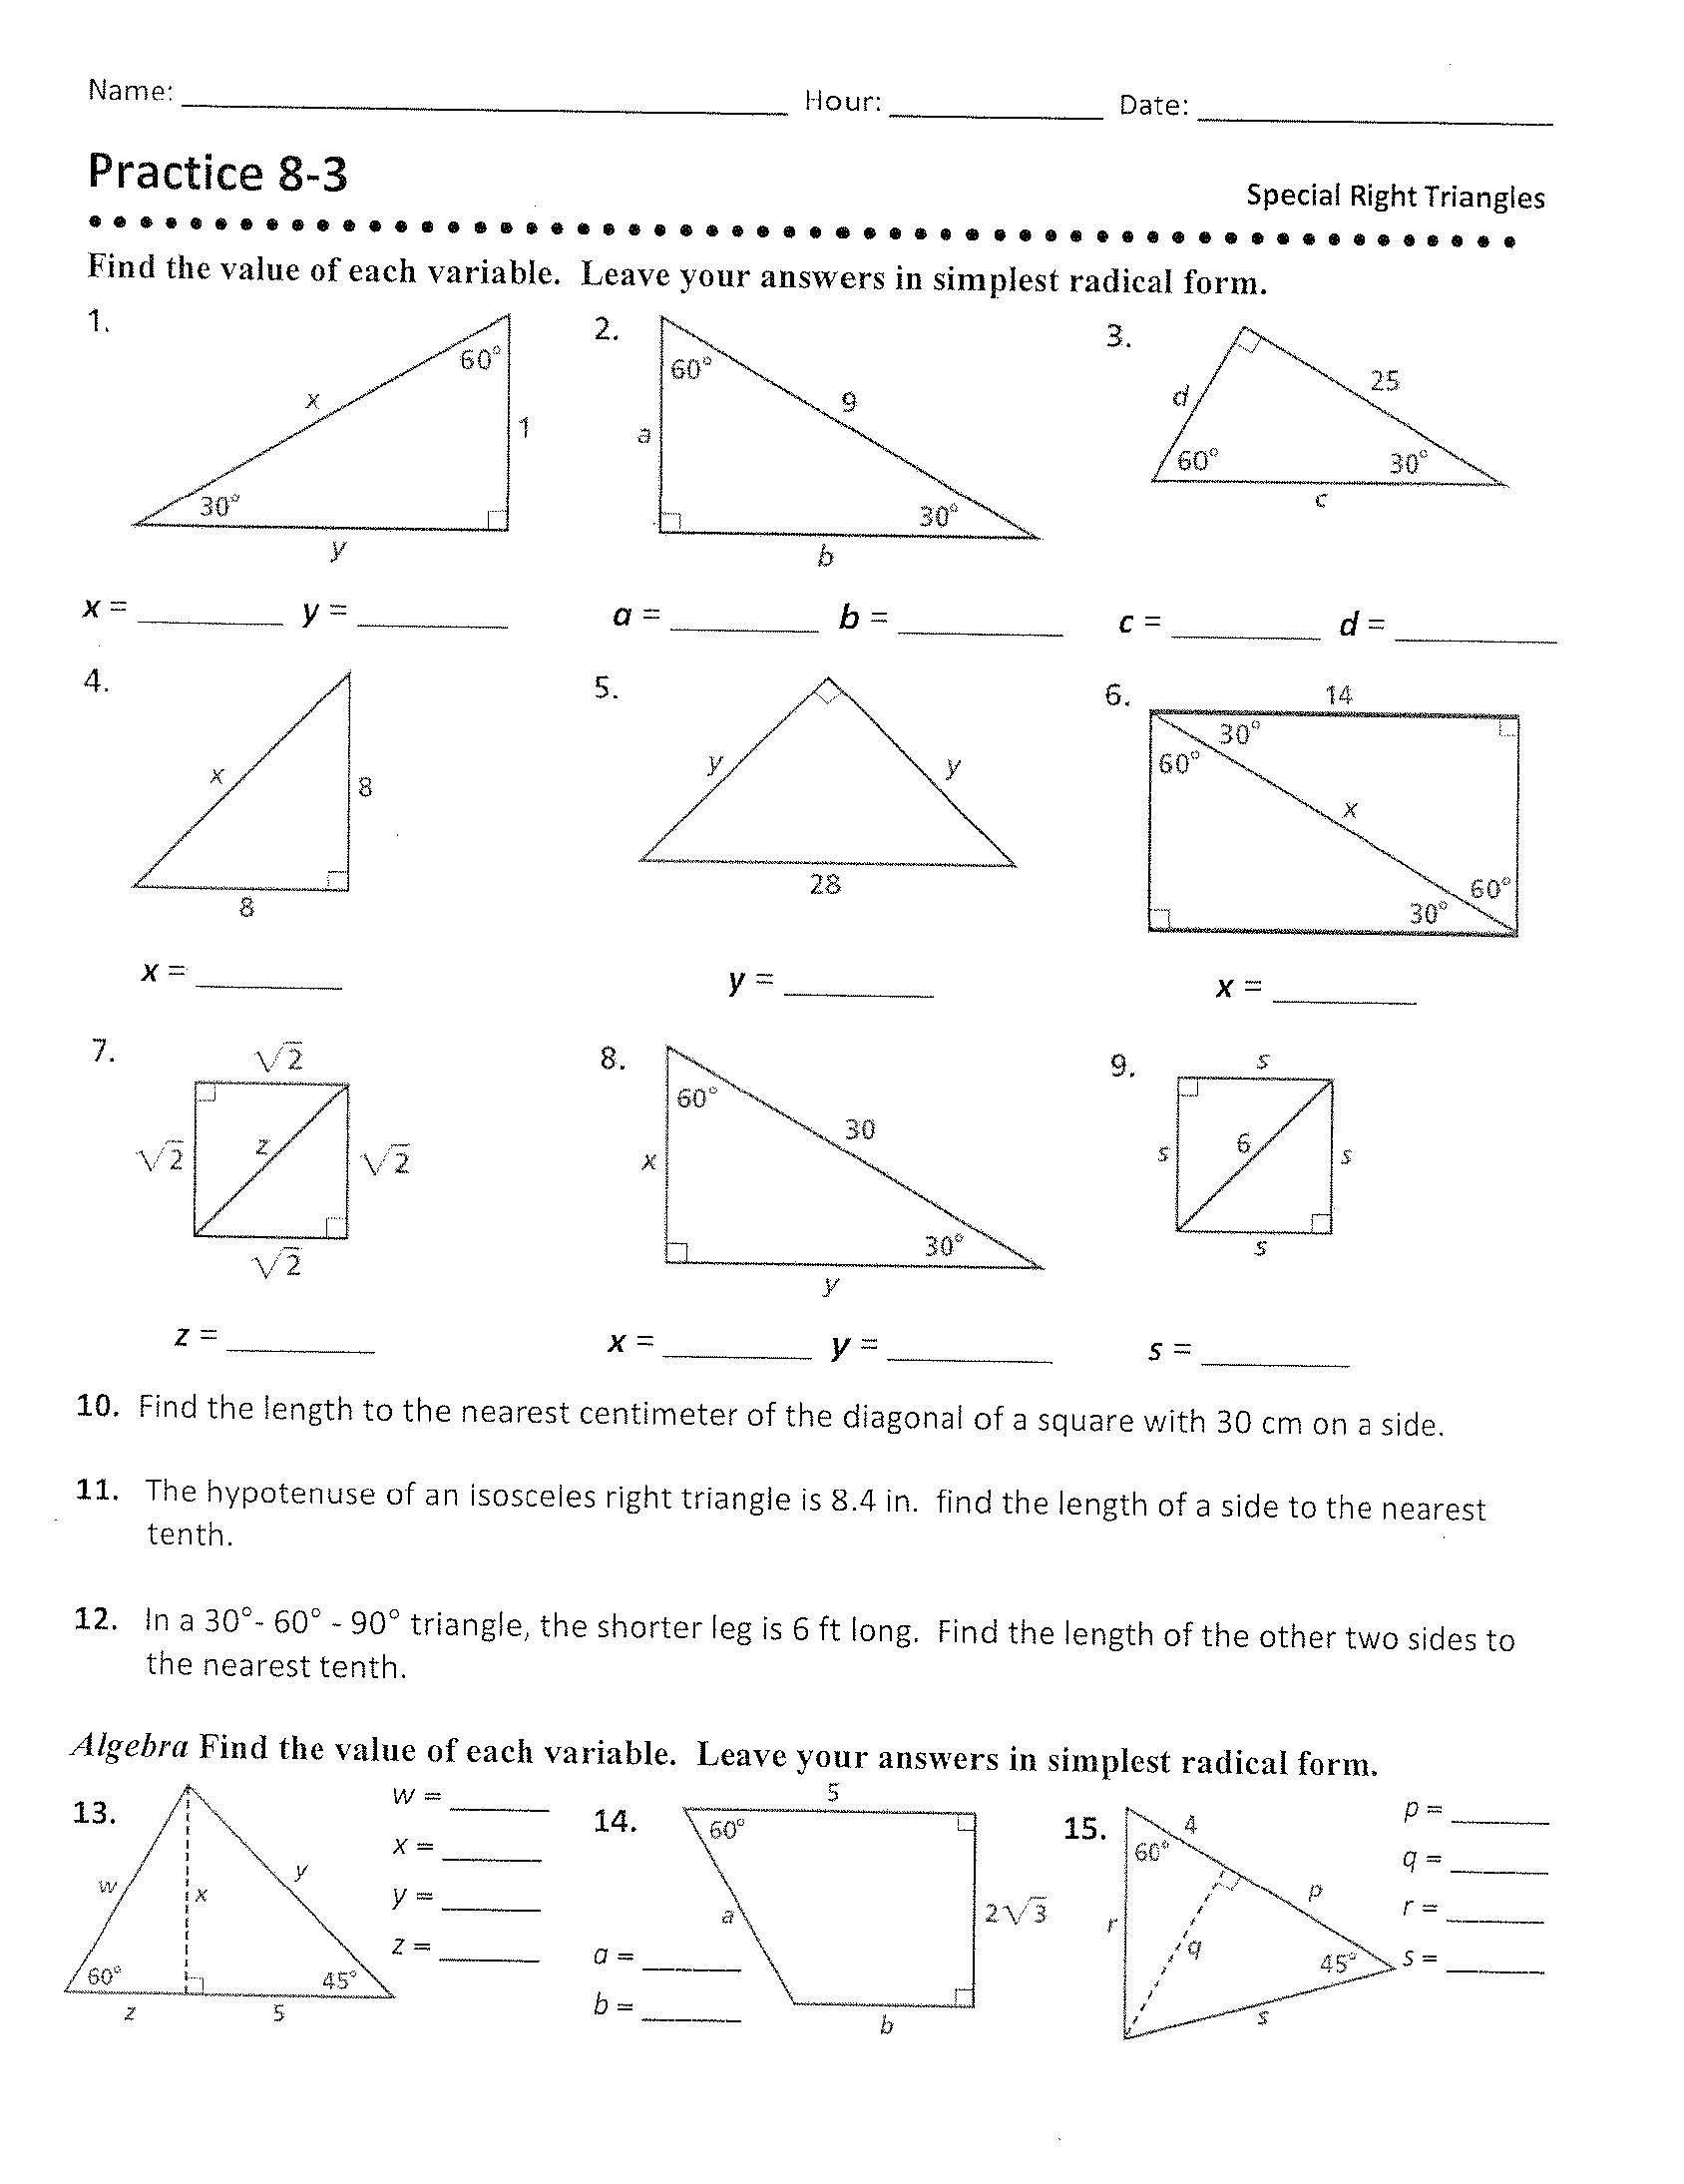 Special Right Triangles Practice Worksheet Special Right